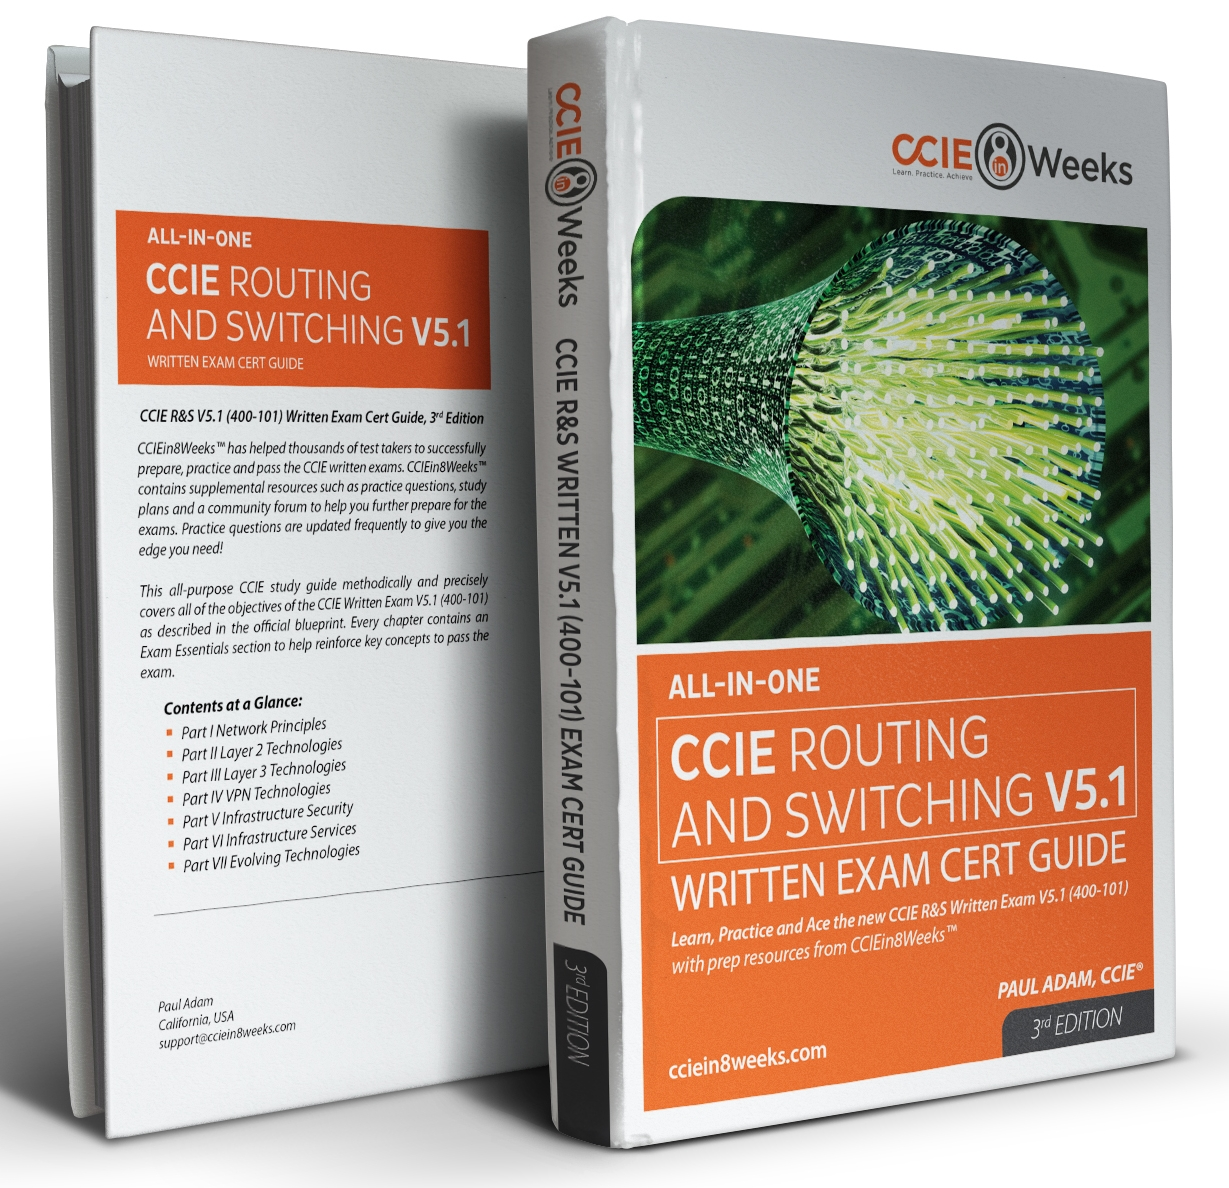 CCIE R&S Written Exam V5.1